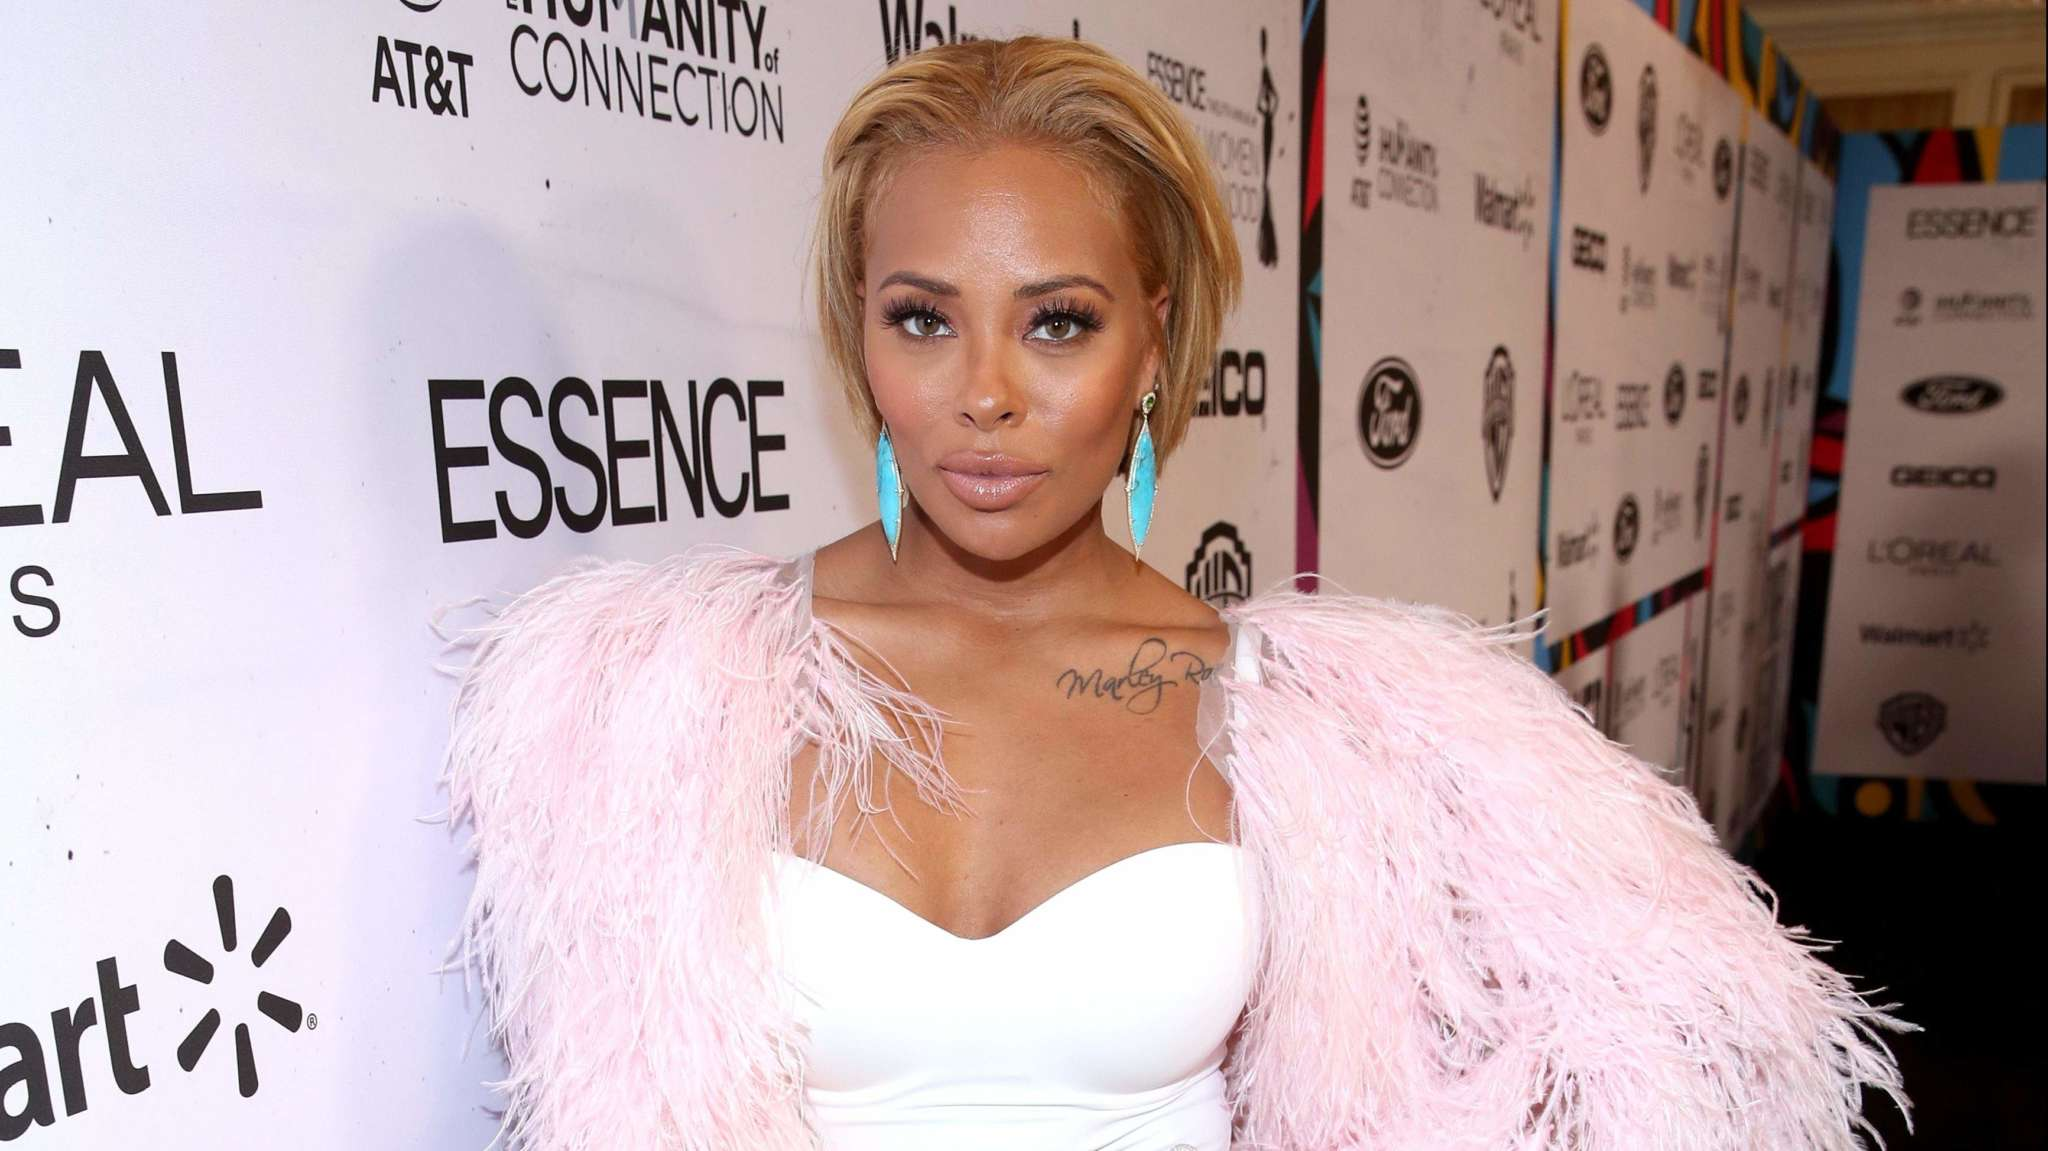 Eva Marcille Shares A Drop-Dead Gorgeous Photo And A Motivational Message That Has Fans In Awe